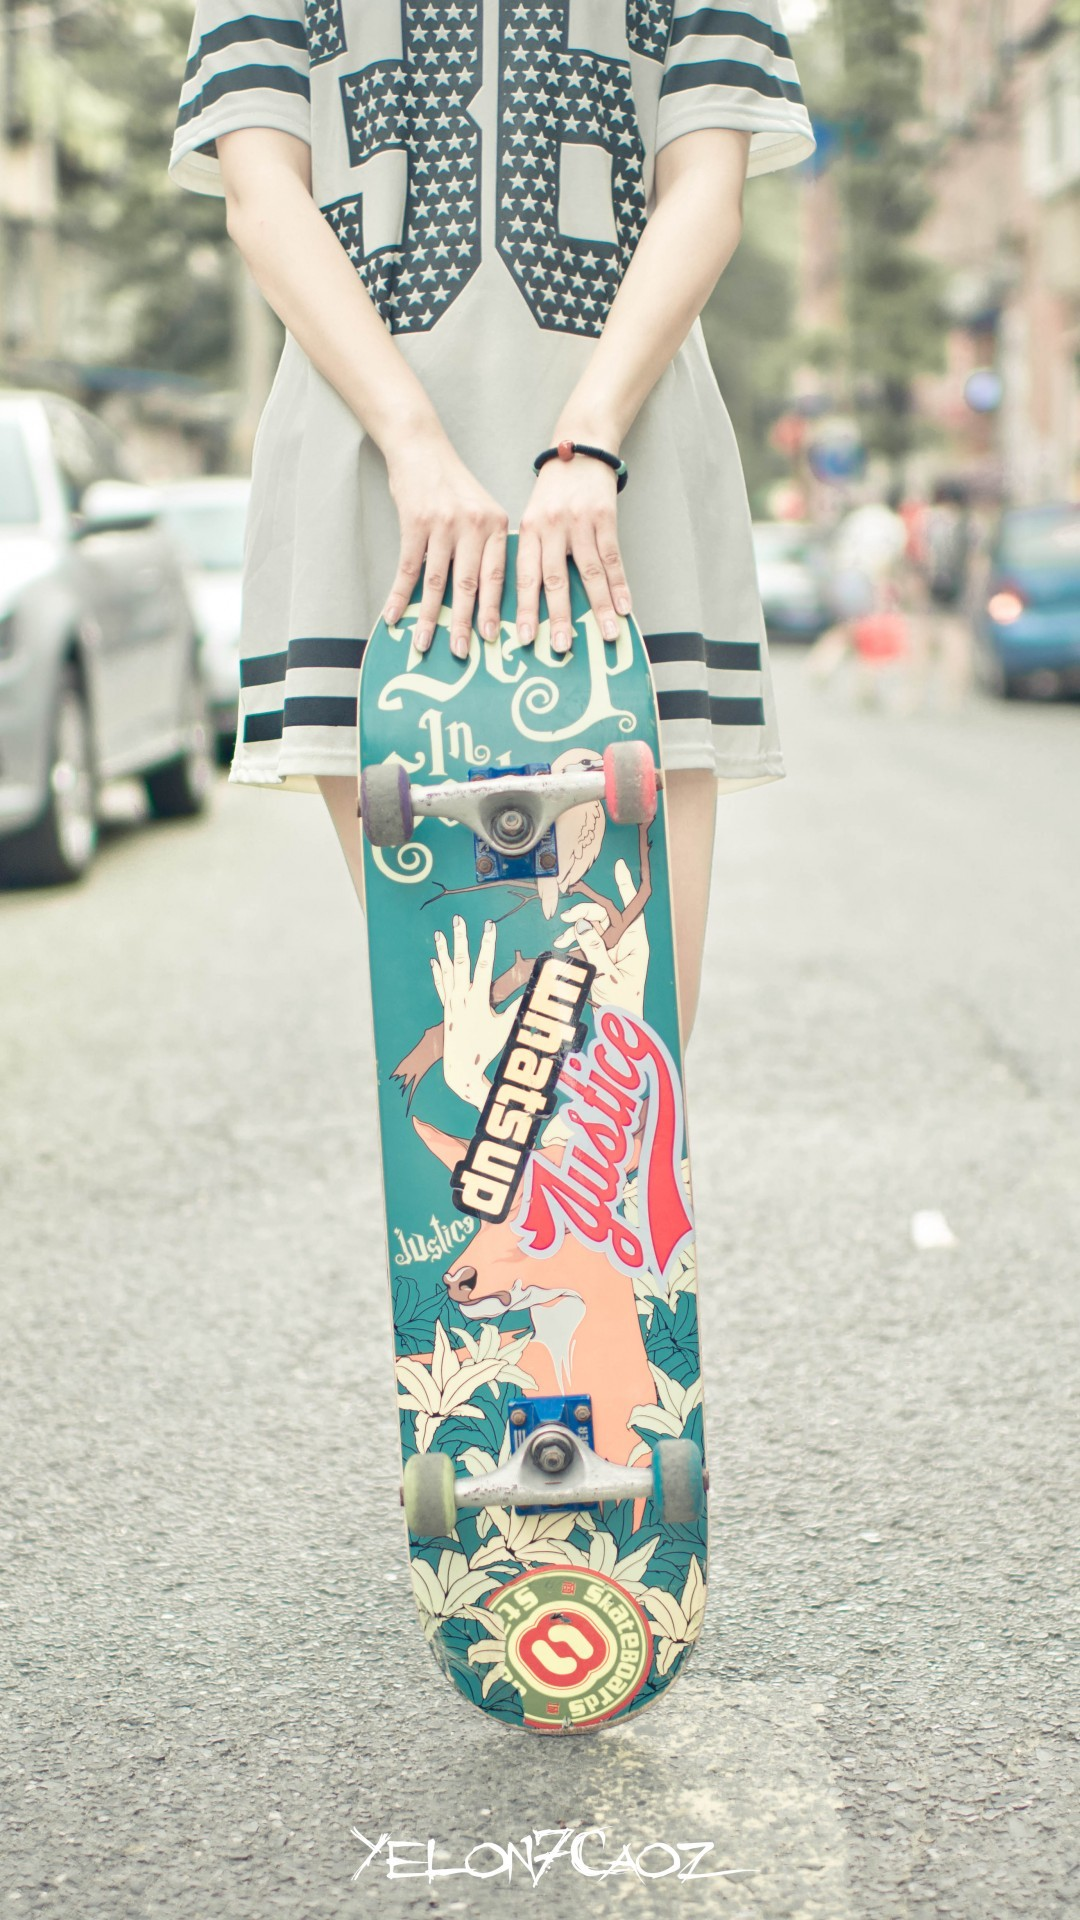 1080x1920 Skateboard Girl Wallpaper